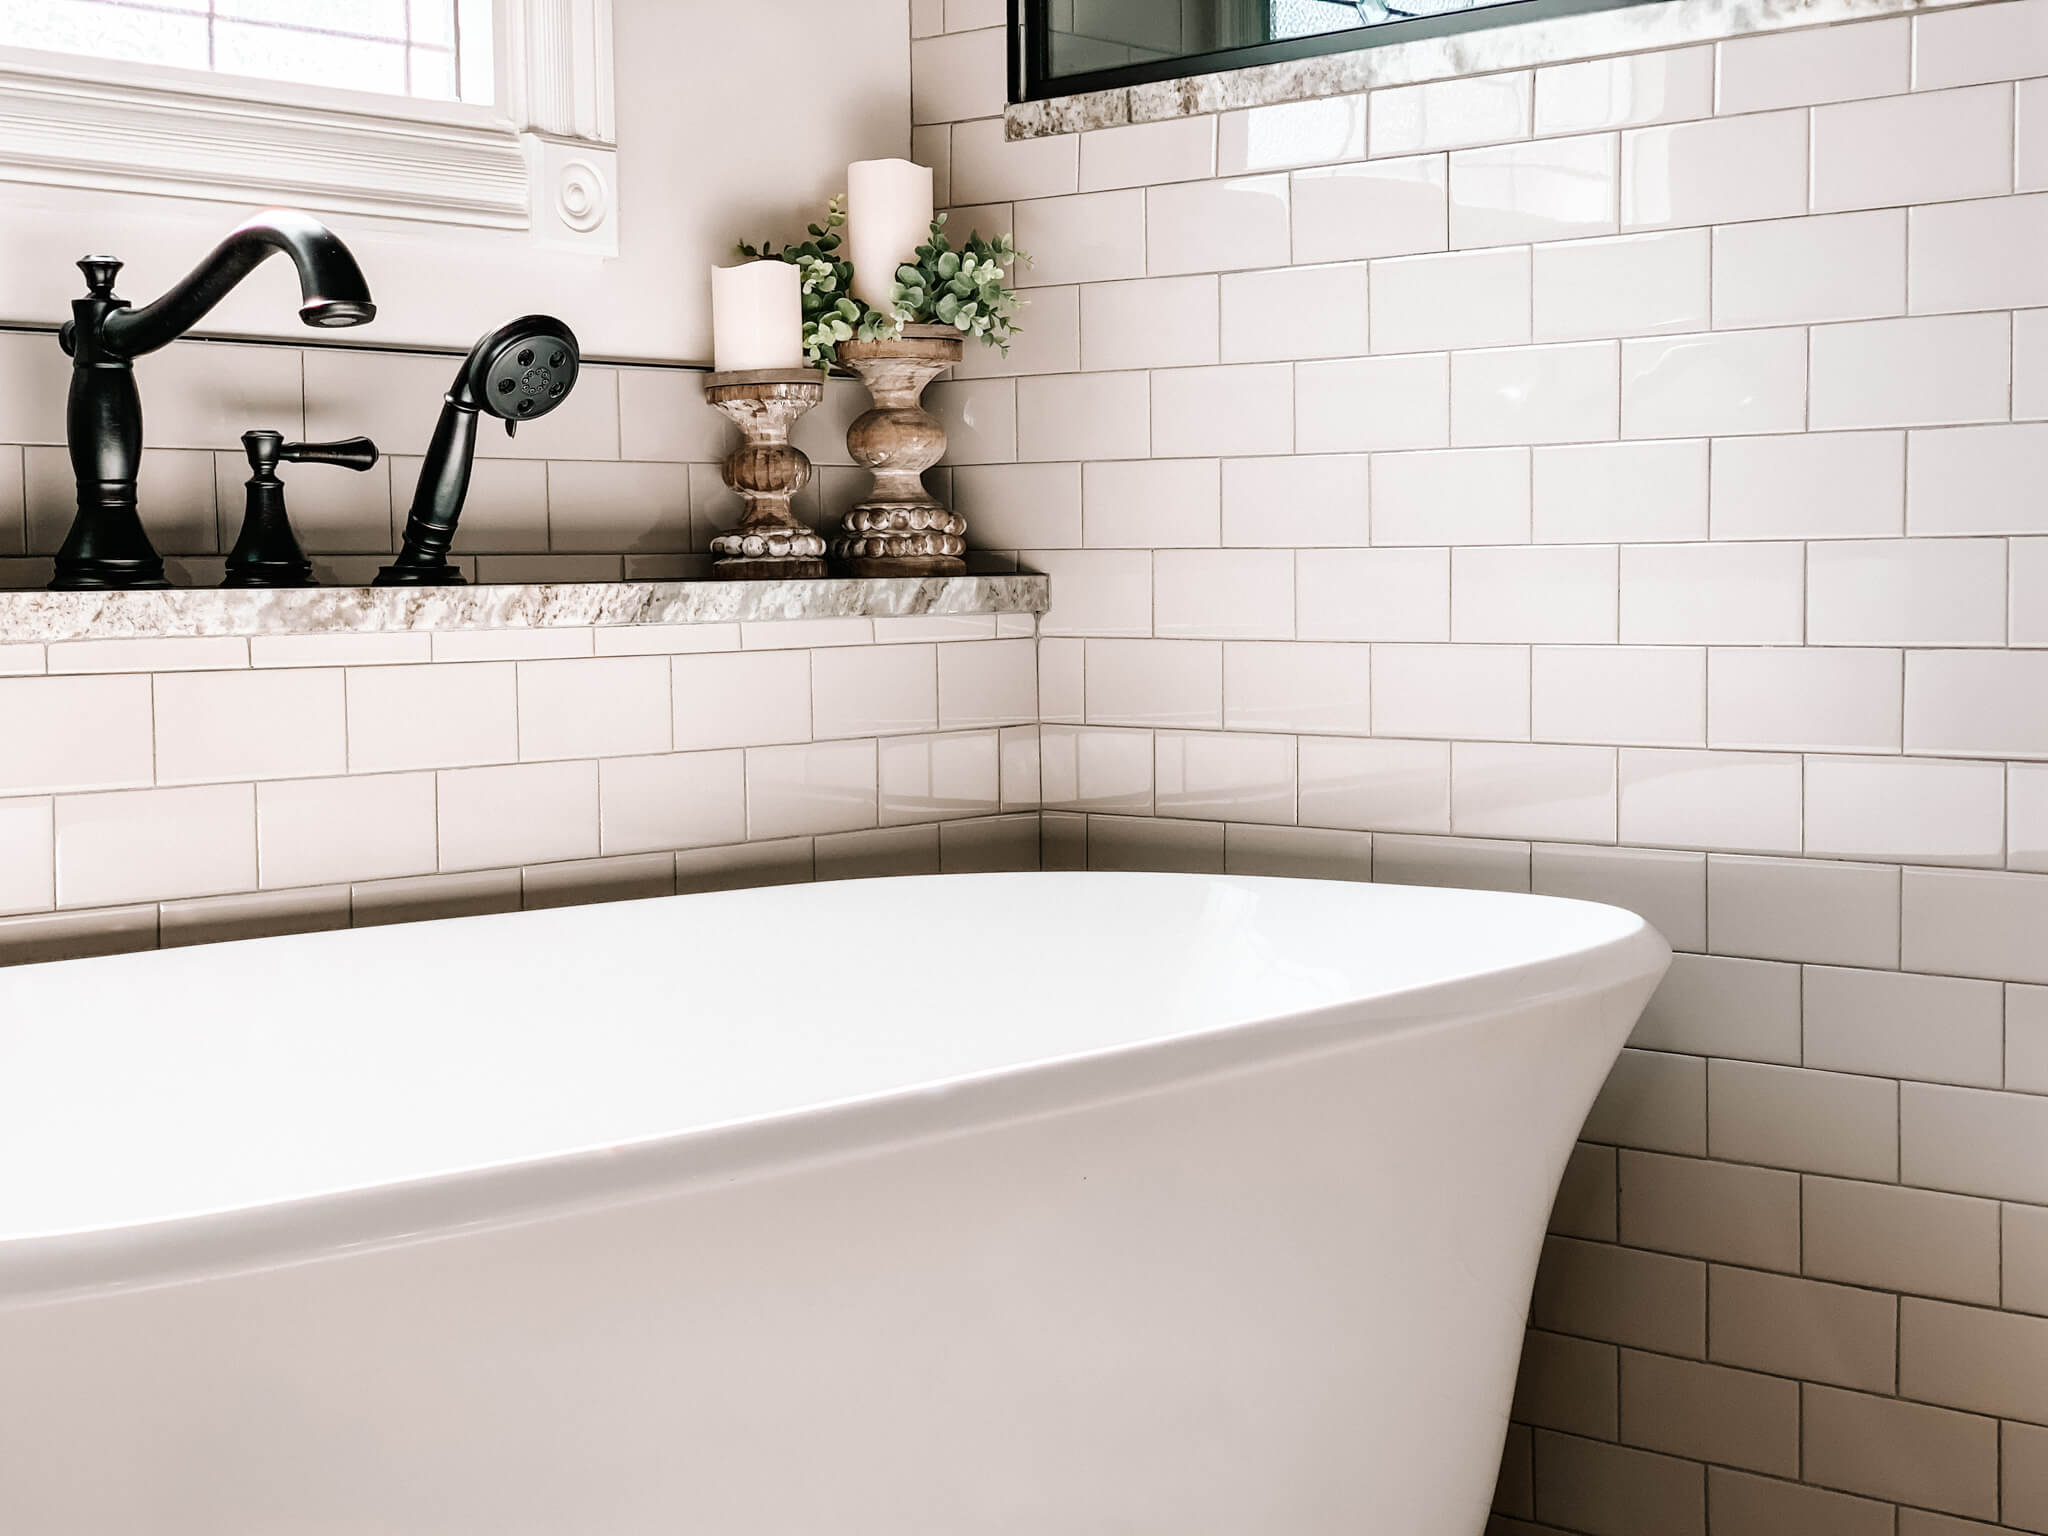 Estimating Your Bathroom Remodel Cost